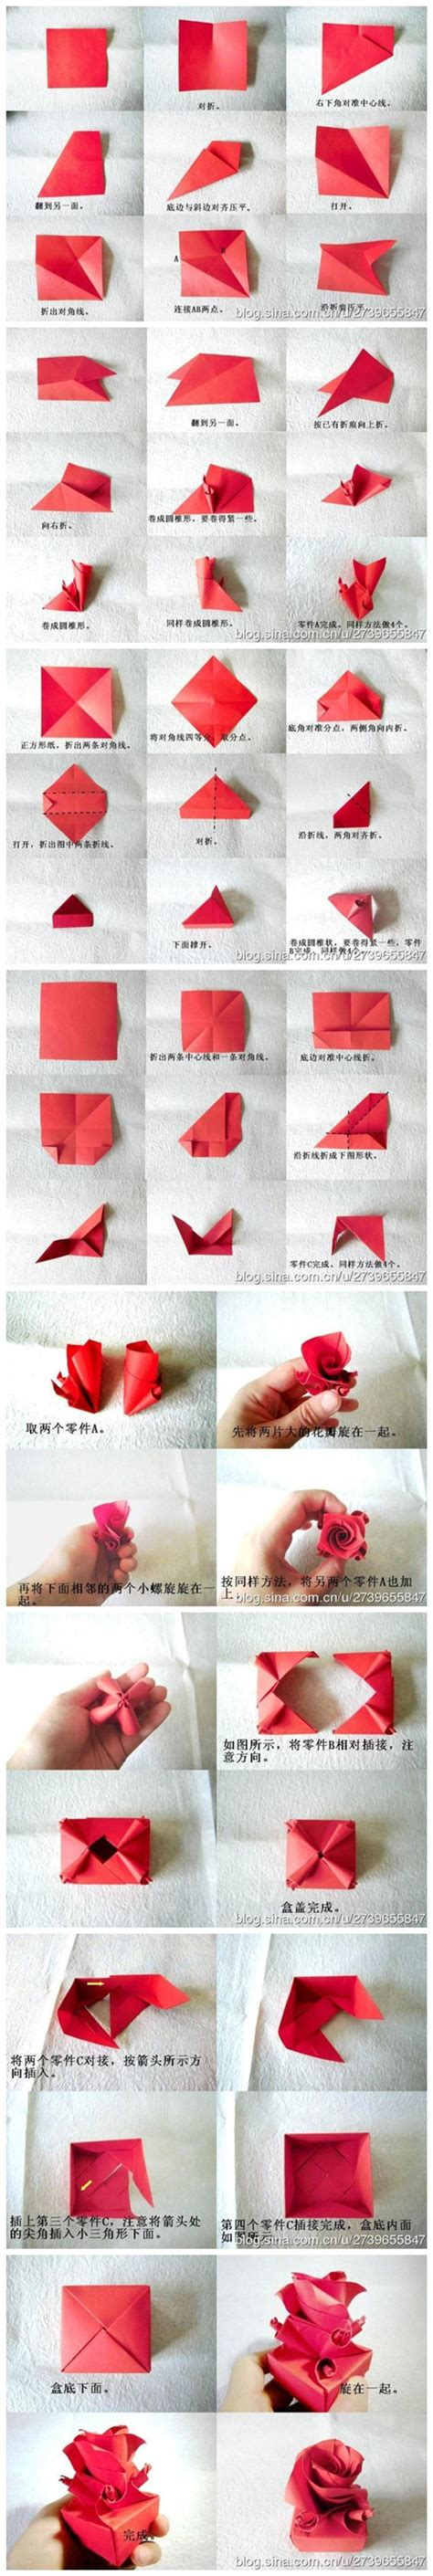 how to fold origami paper craft box for